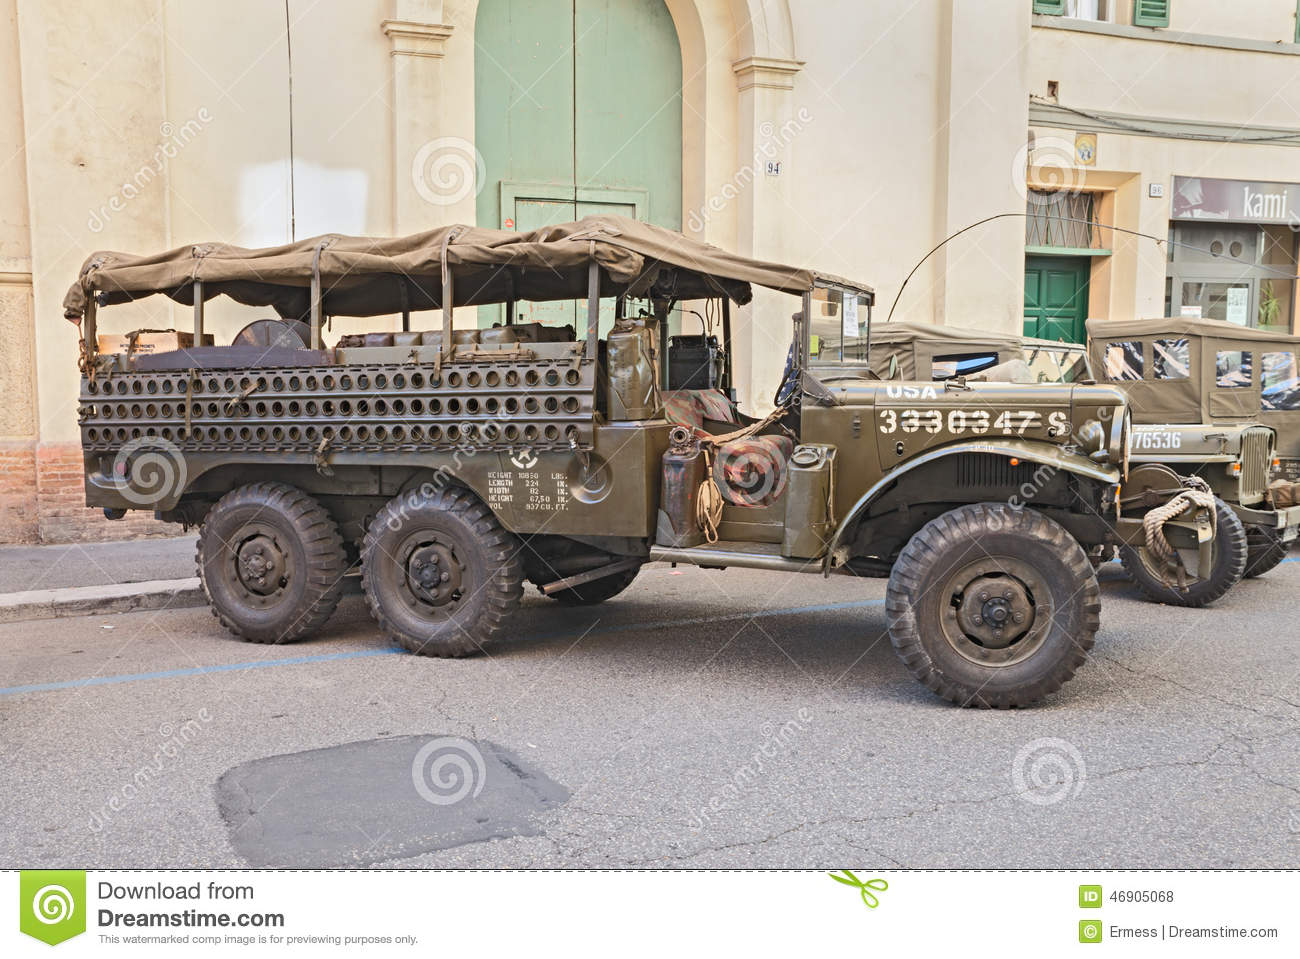 Dodge trucks in wwii - Old Military Truck Dodge Wc 52 Royalty Free Stock Photos